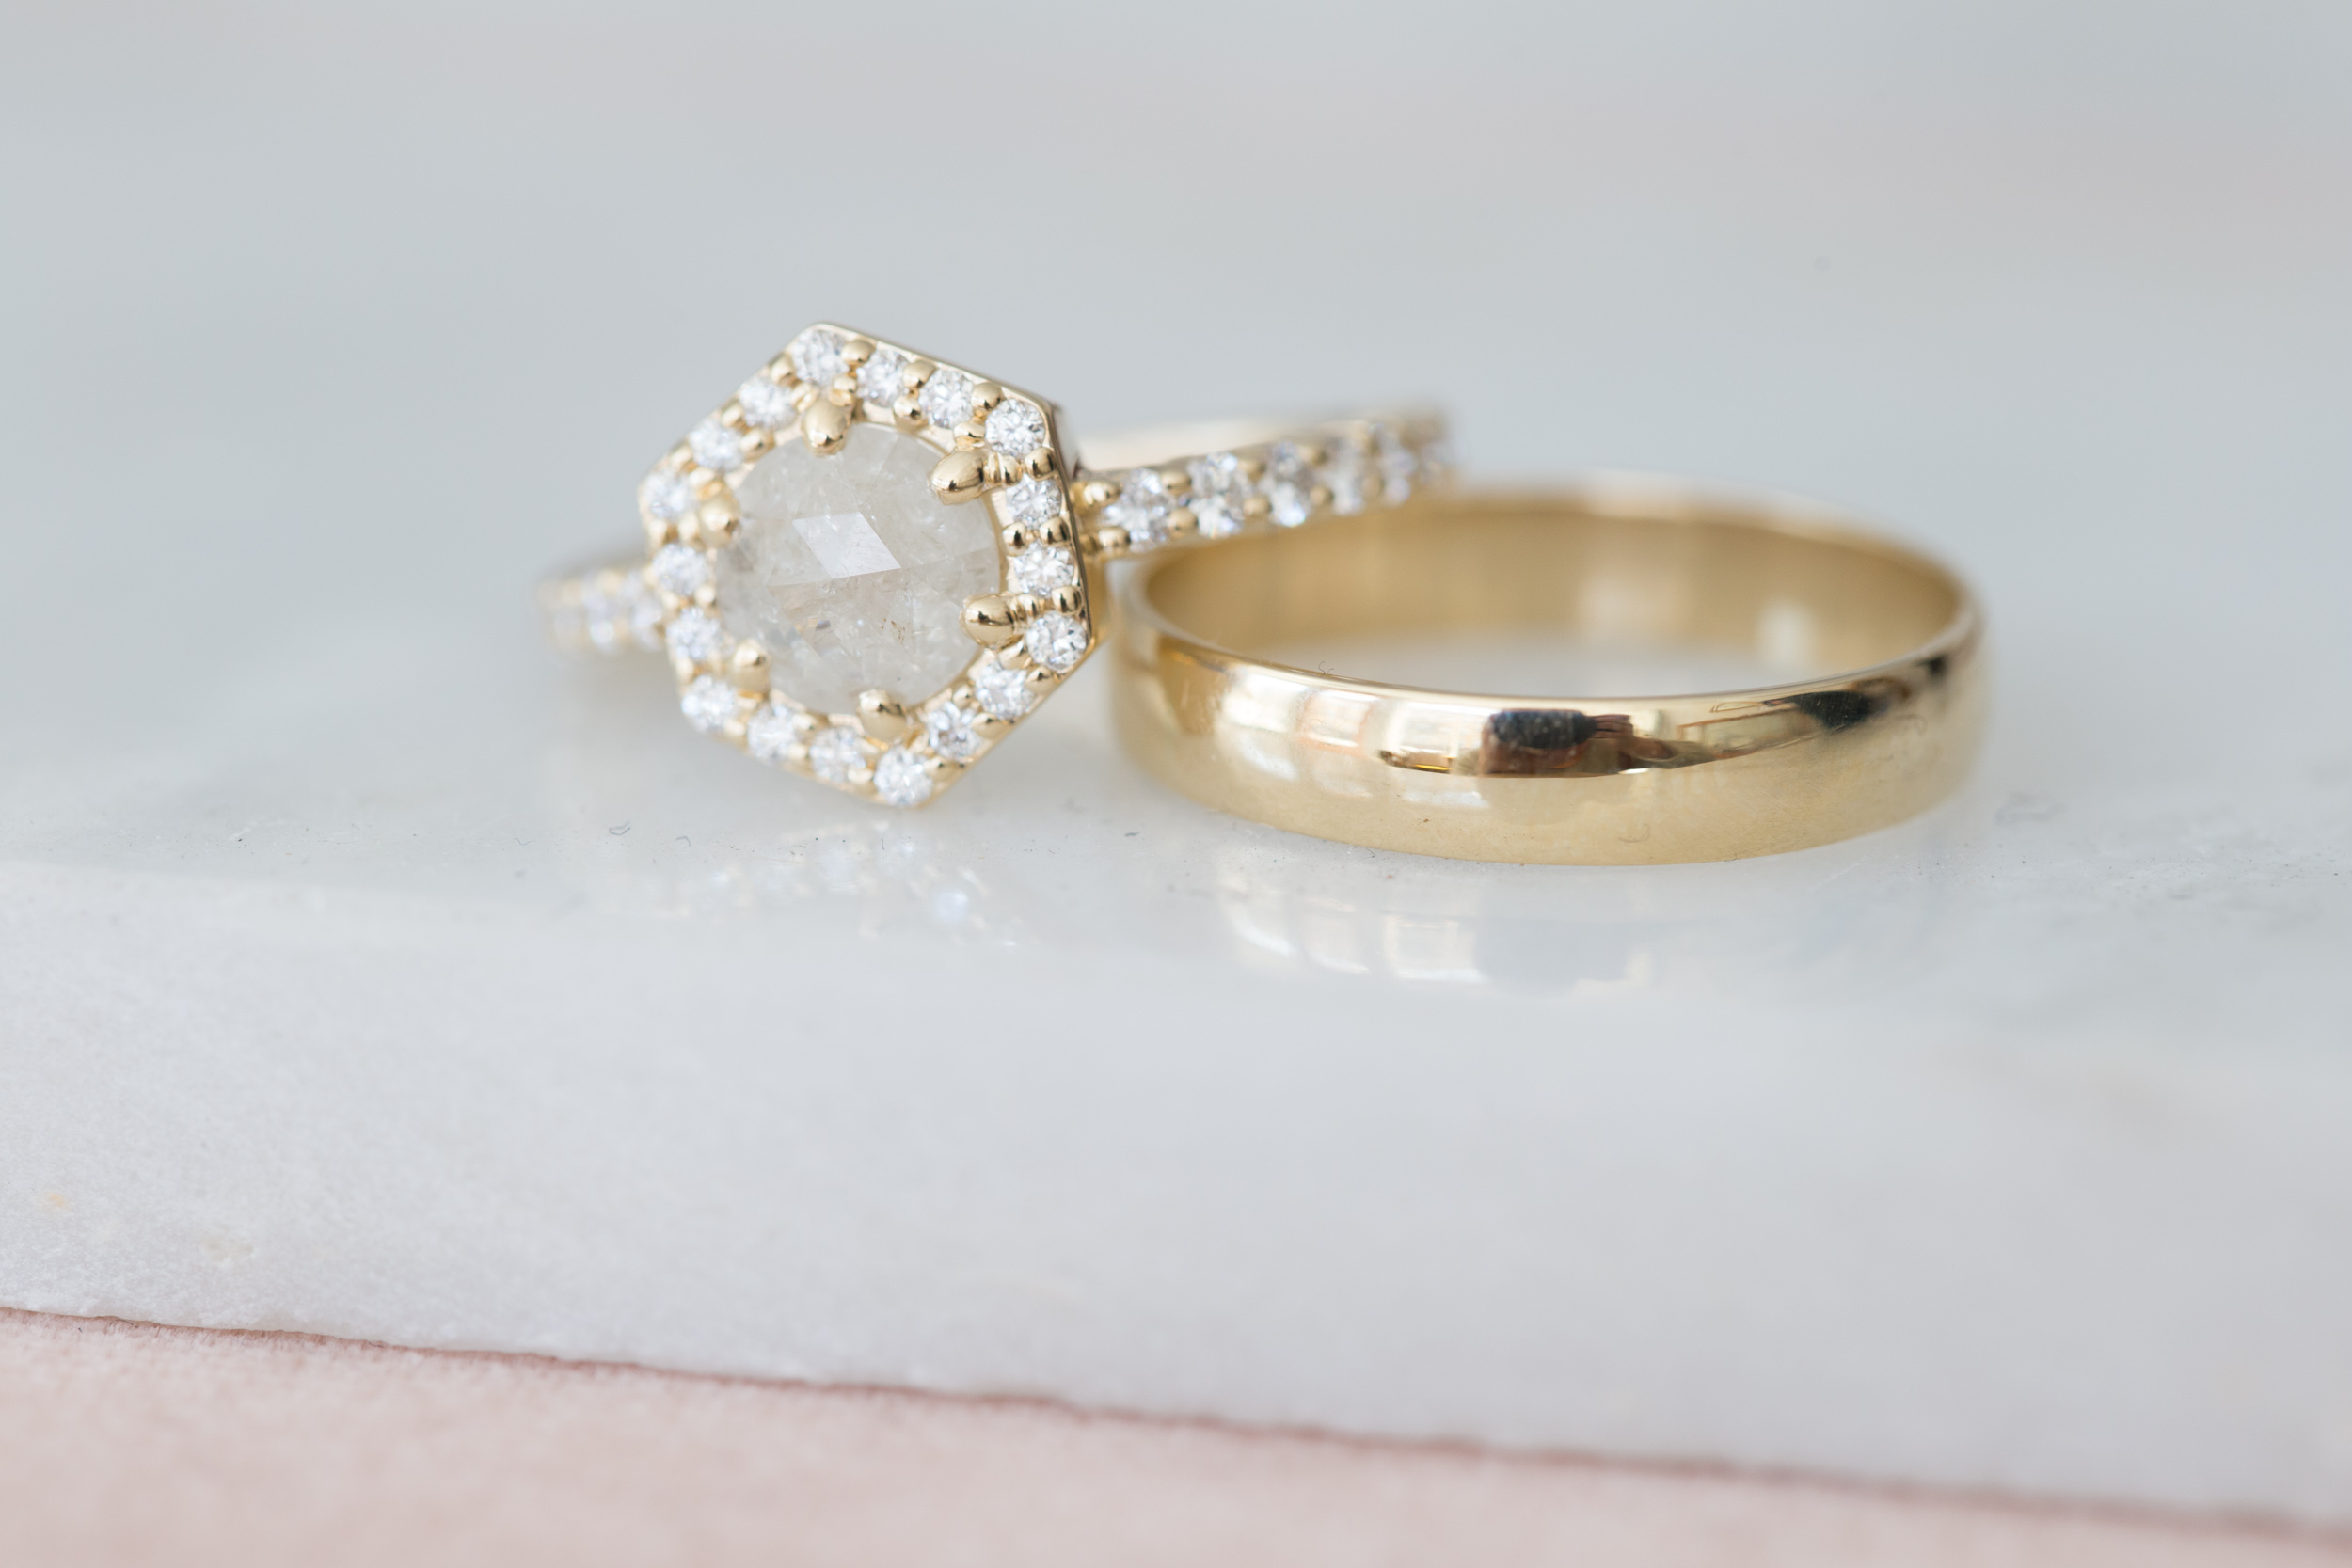 Kerry S. Hexagon Ring-2.jpg